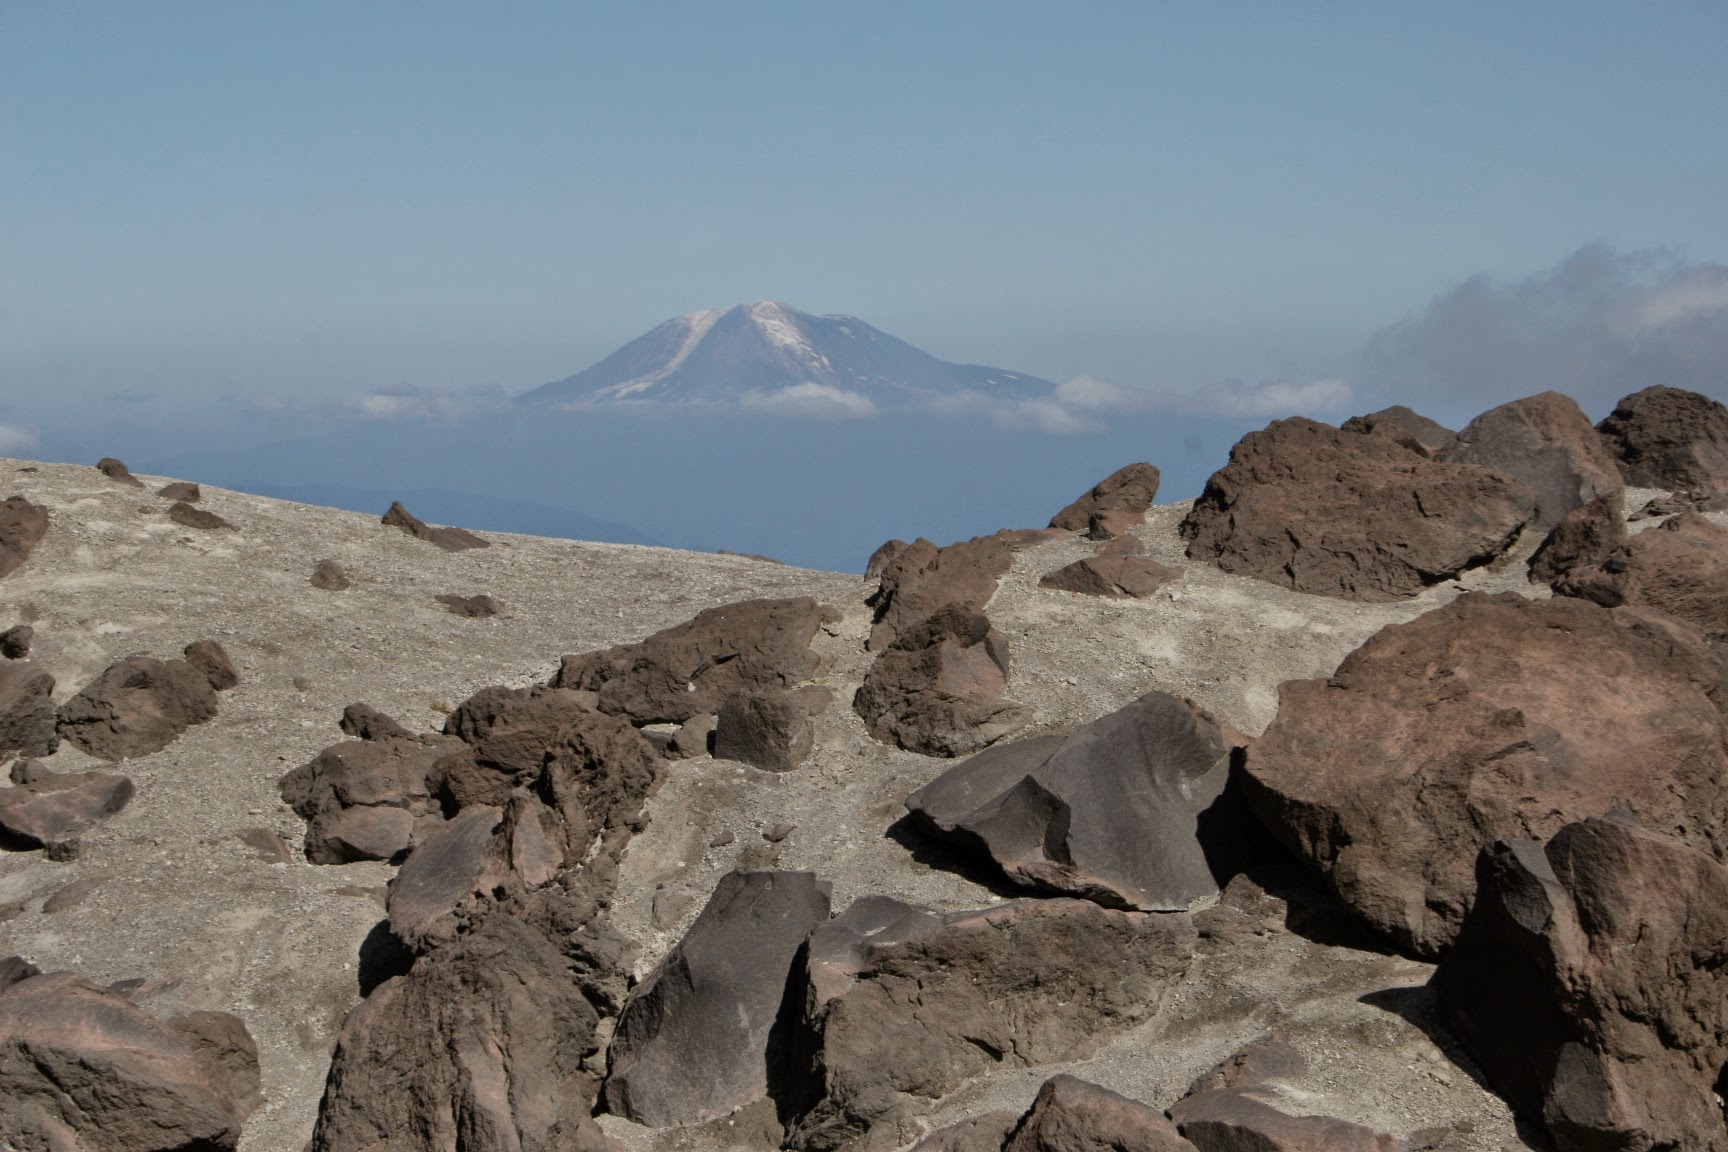 Brown rocks and volcanic sand in the foreground, a mountain and clouds in the background